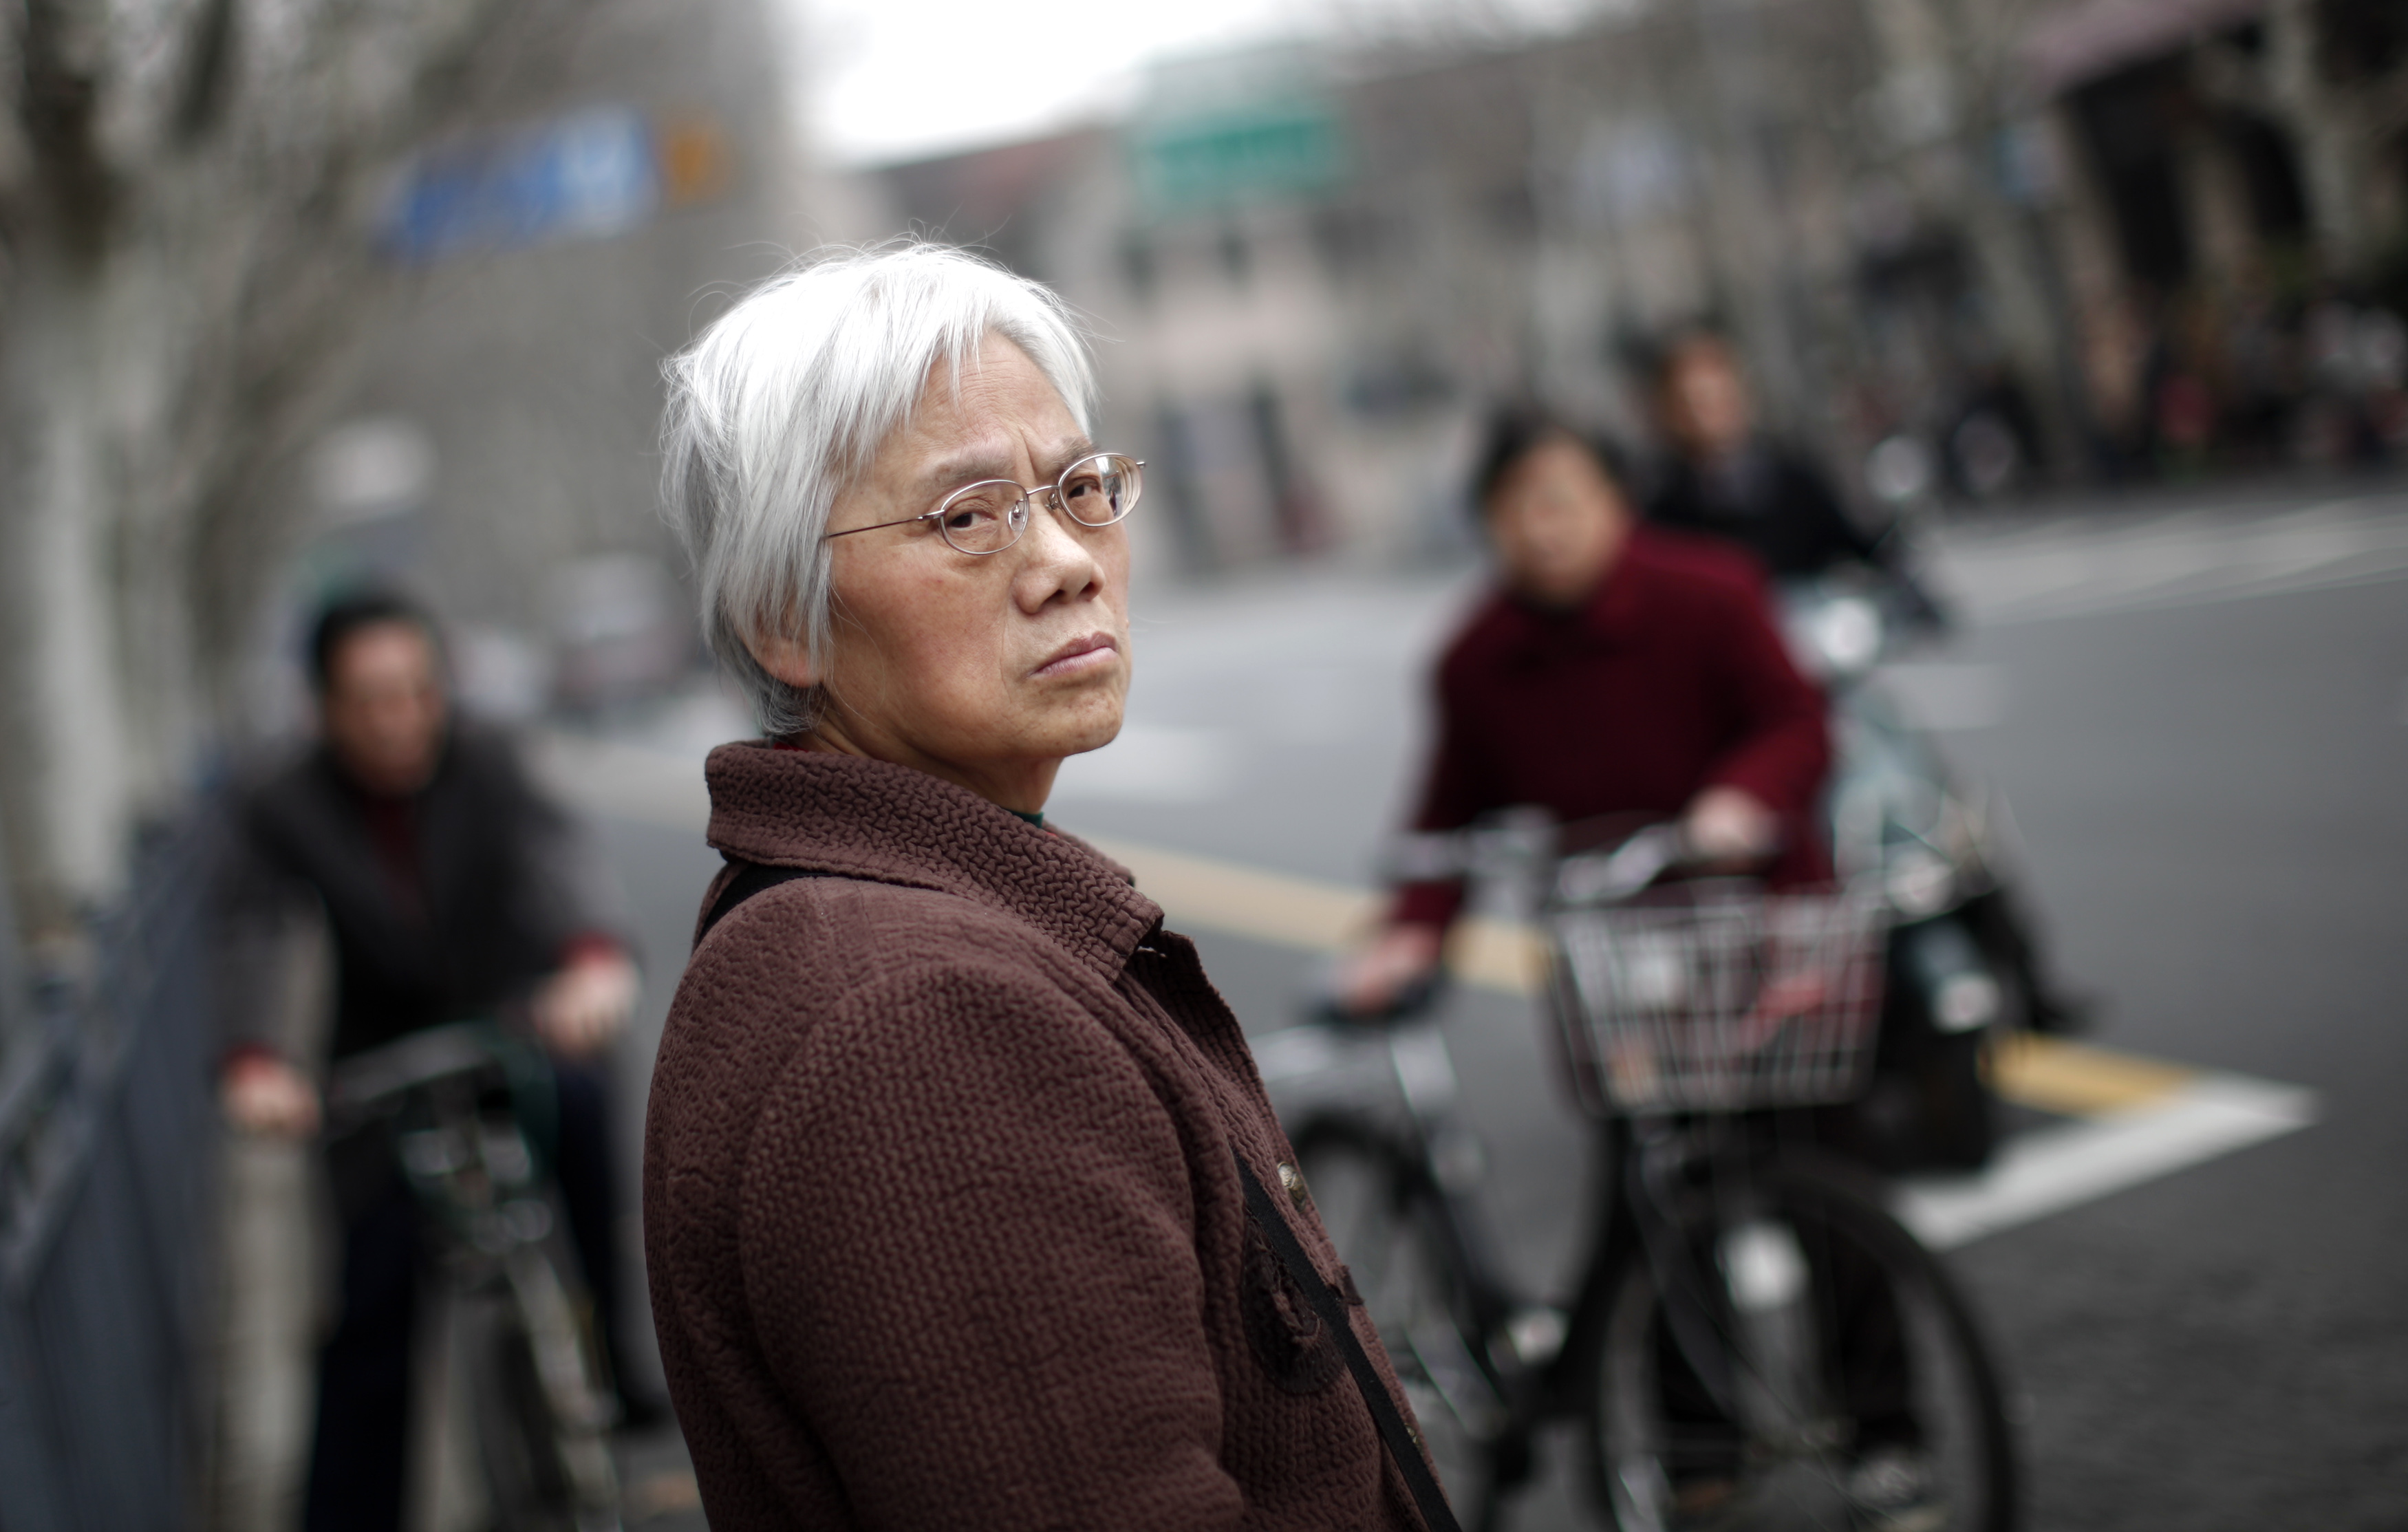 shanghai_elderly001